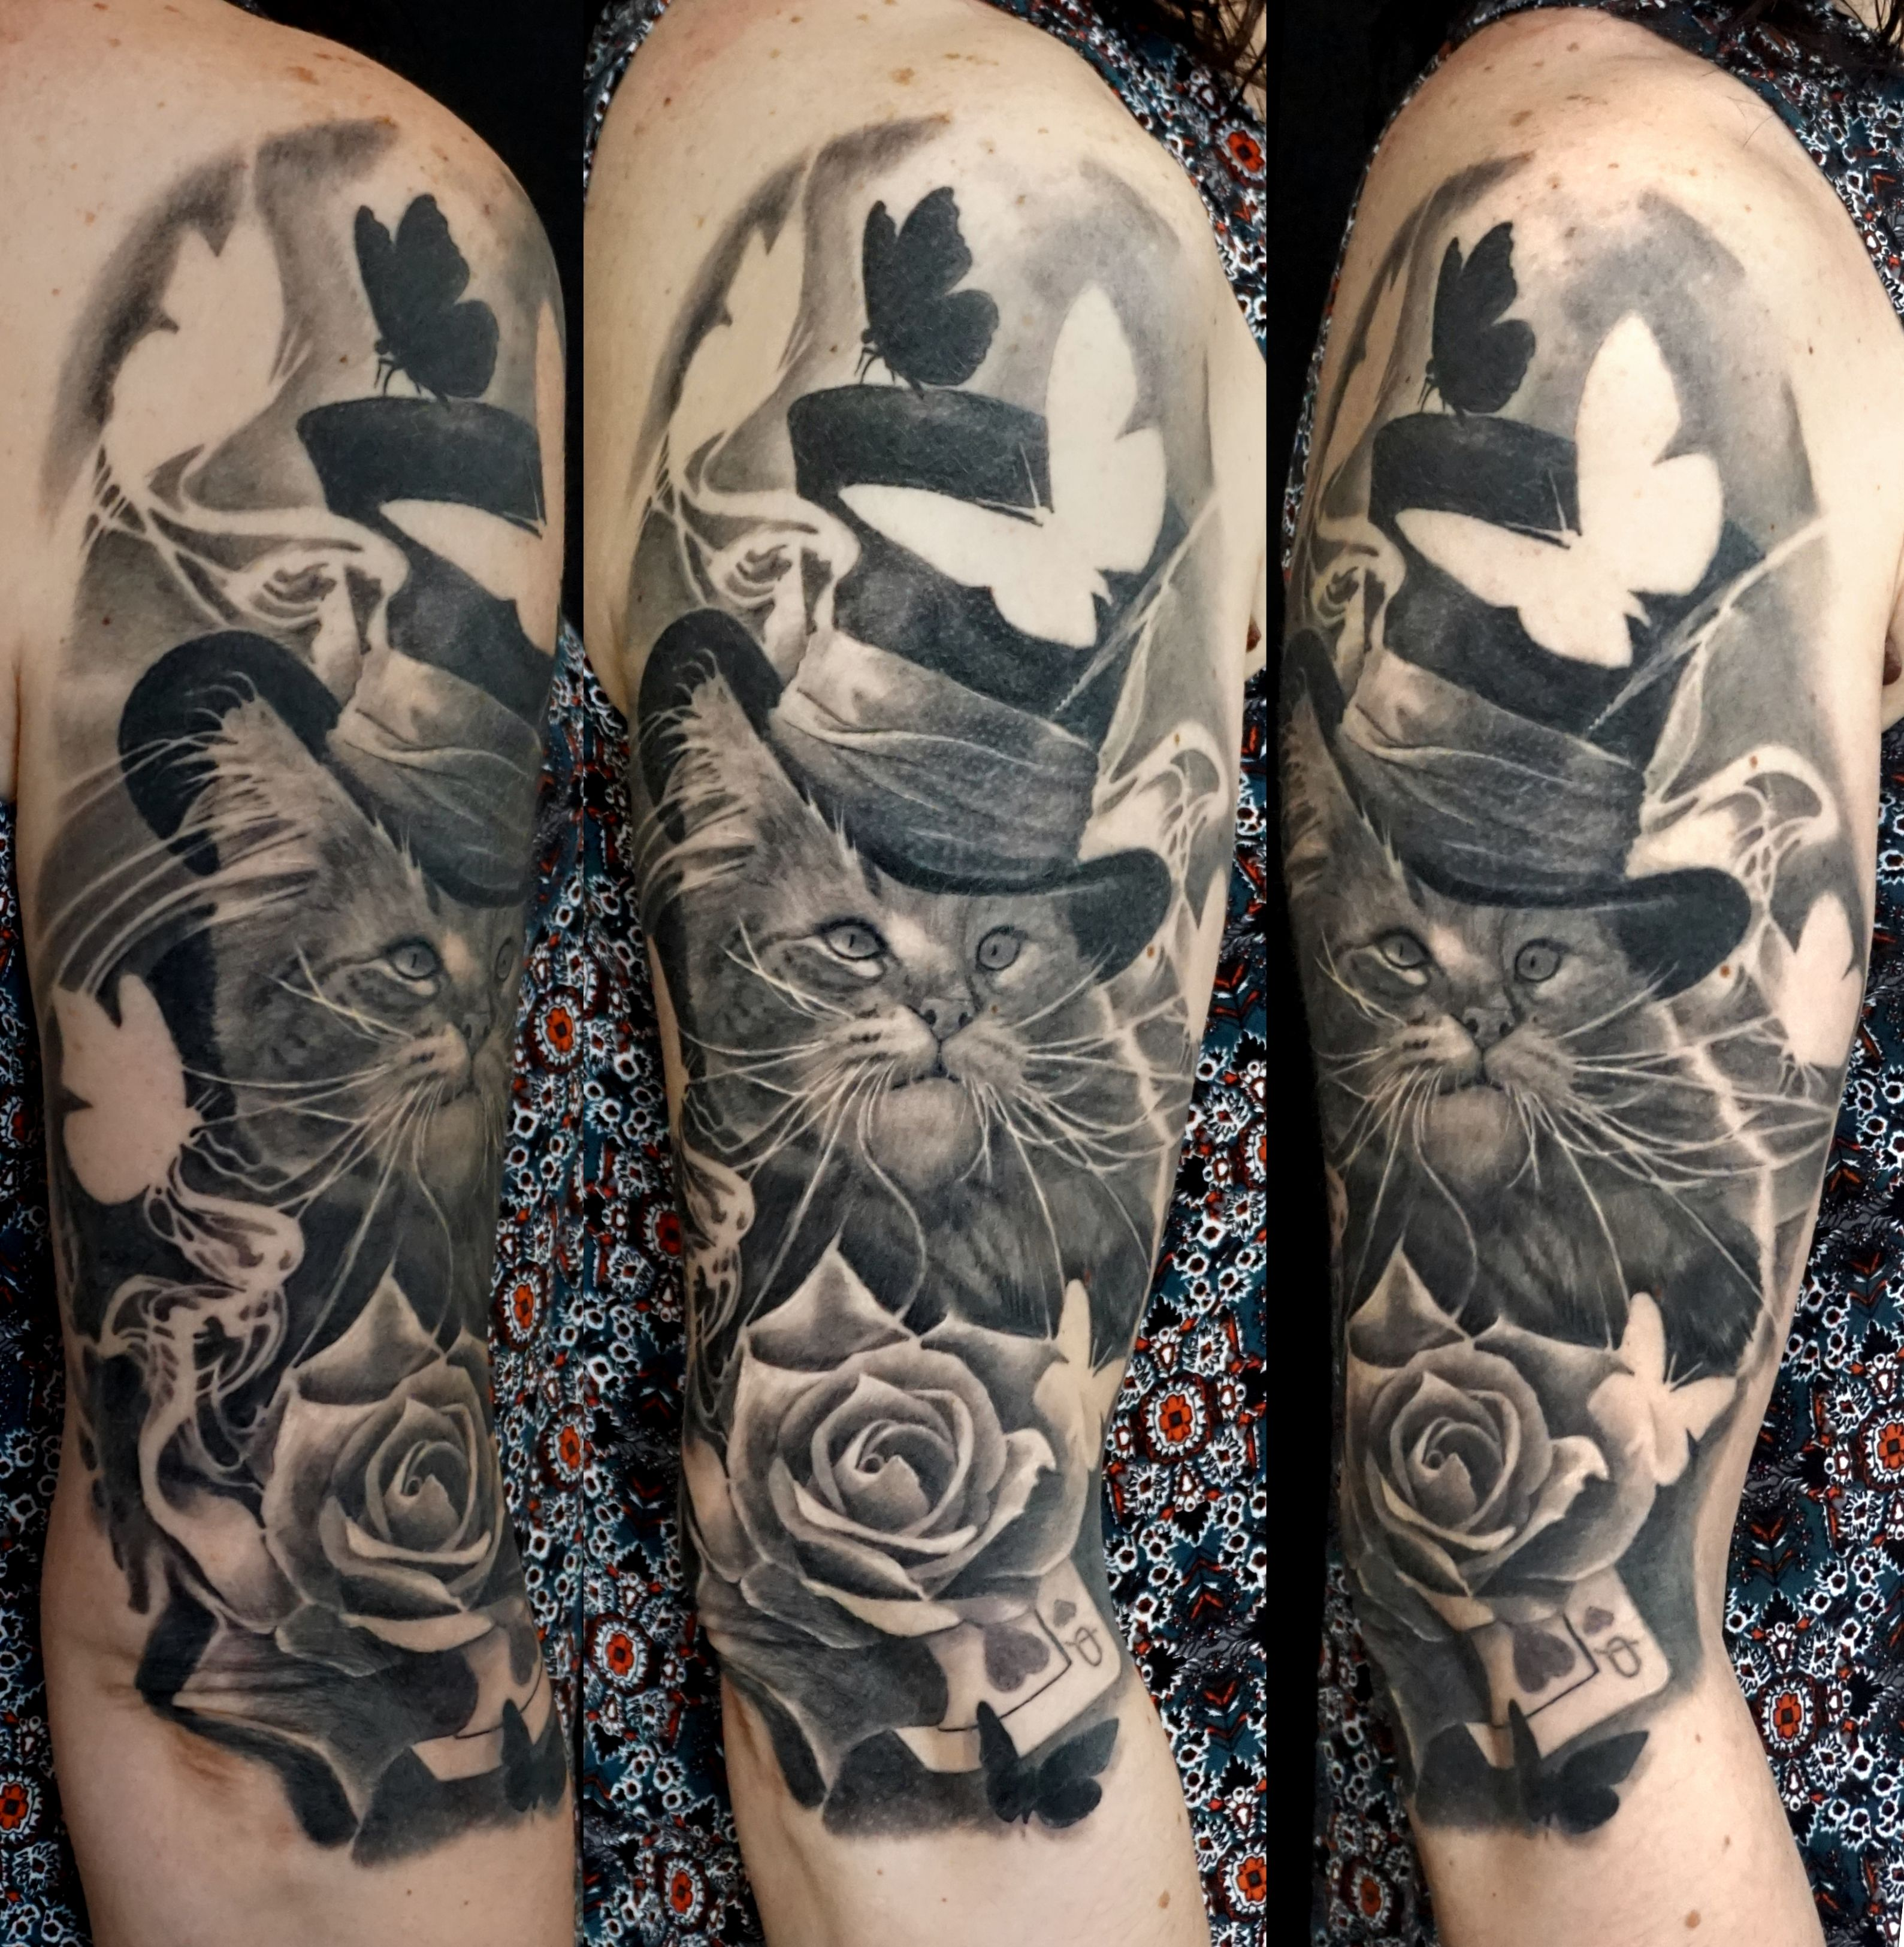 8cdf68fb0 Alo Loco Tattoo | HEALED Alice in Wonderland | Black and grey realism #halfsleeve  tattoo of a cat wearing hat surrounded by #butterflies #rose smoke ...